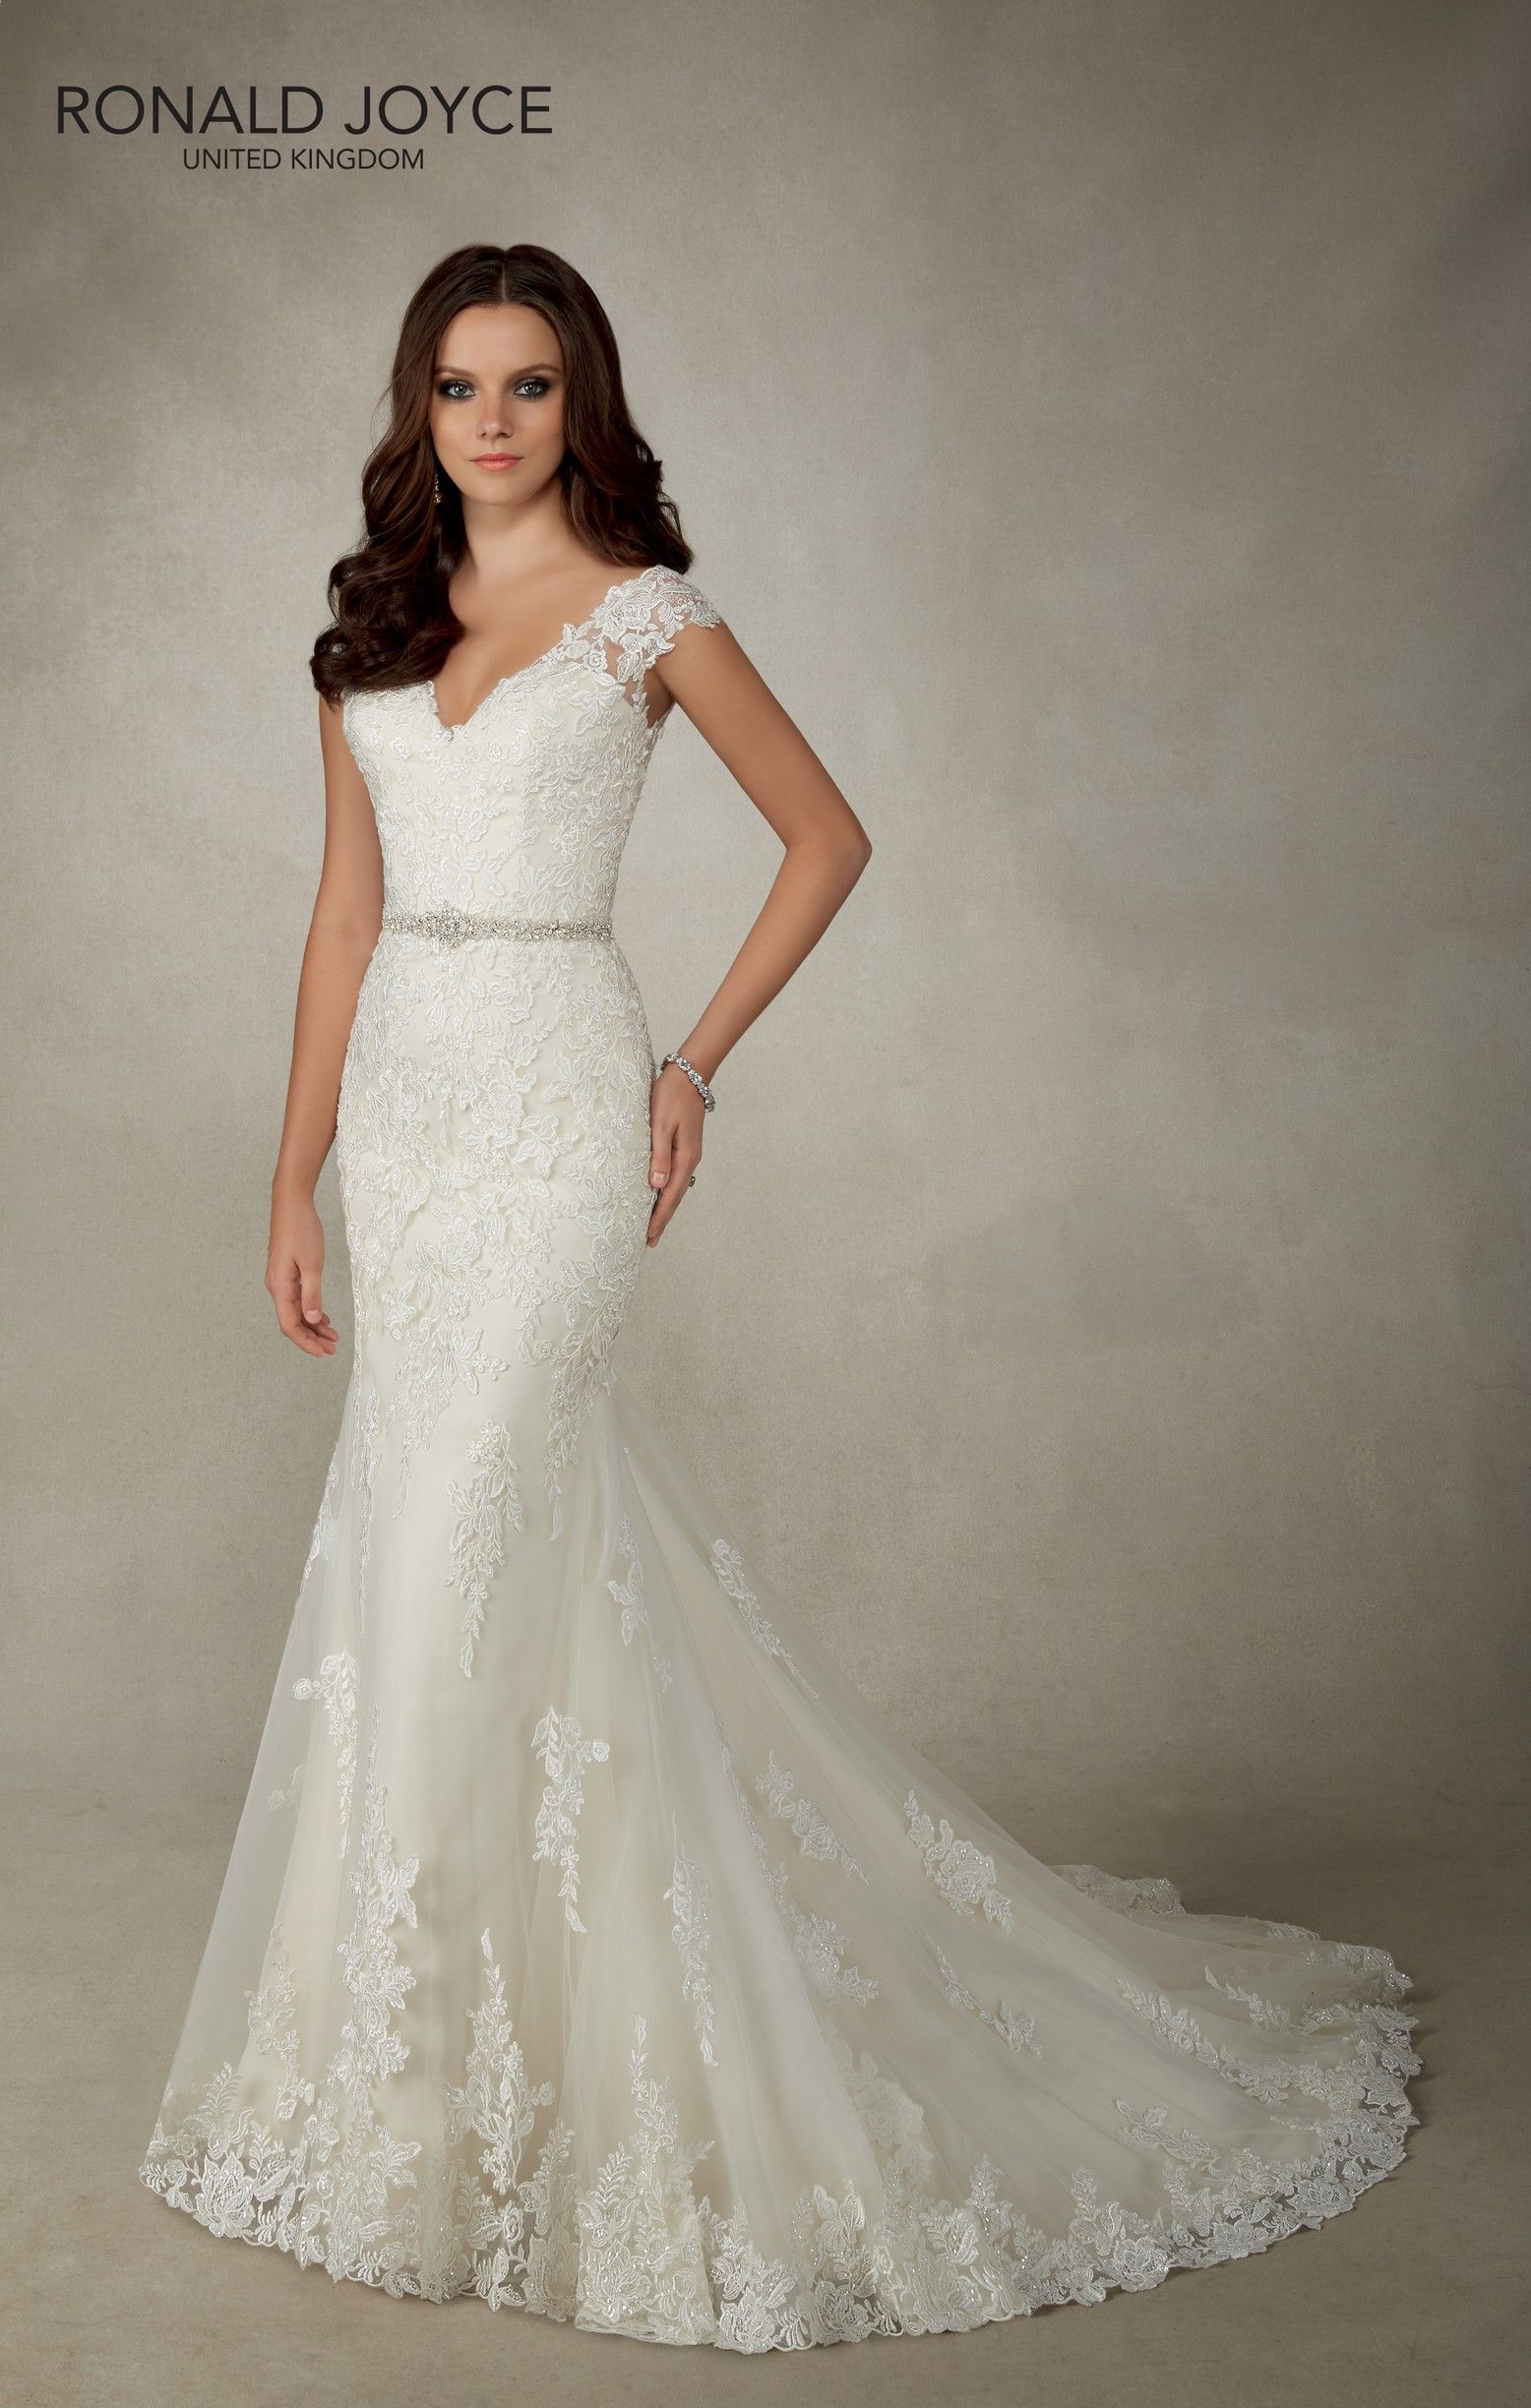 The 25 Best Ronald Joyce Wedding Dresses Ideas On